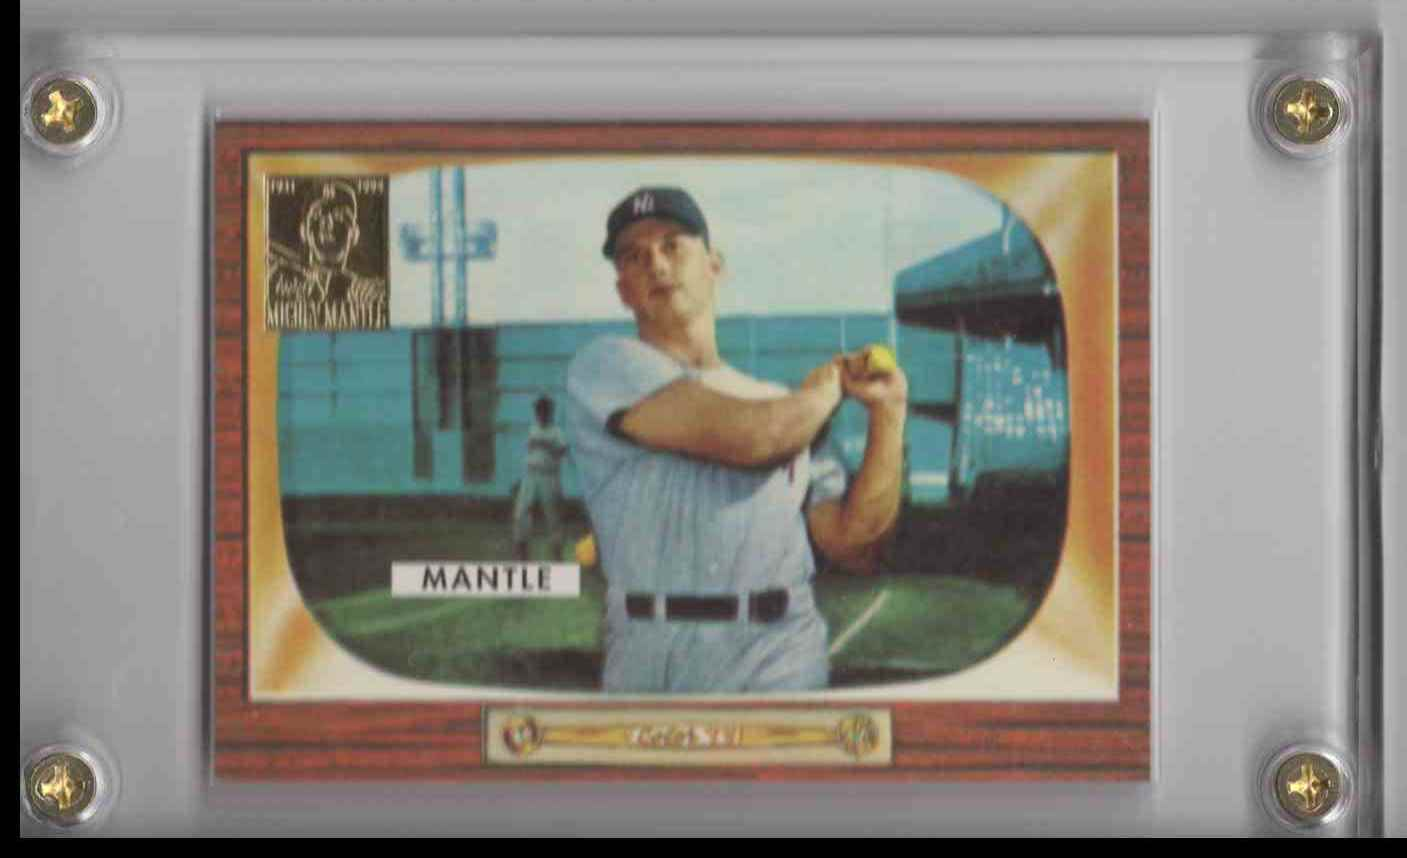 1996 Topps Mickey Mantle Commemorative Set Mickey Mantle #5 card front image